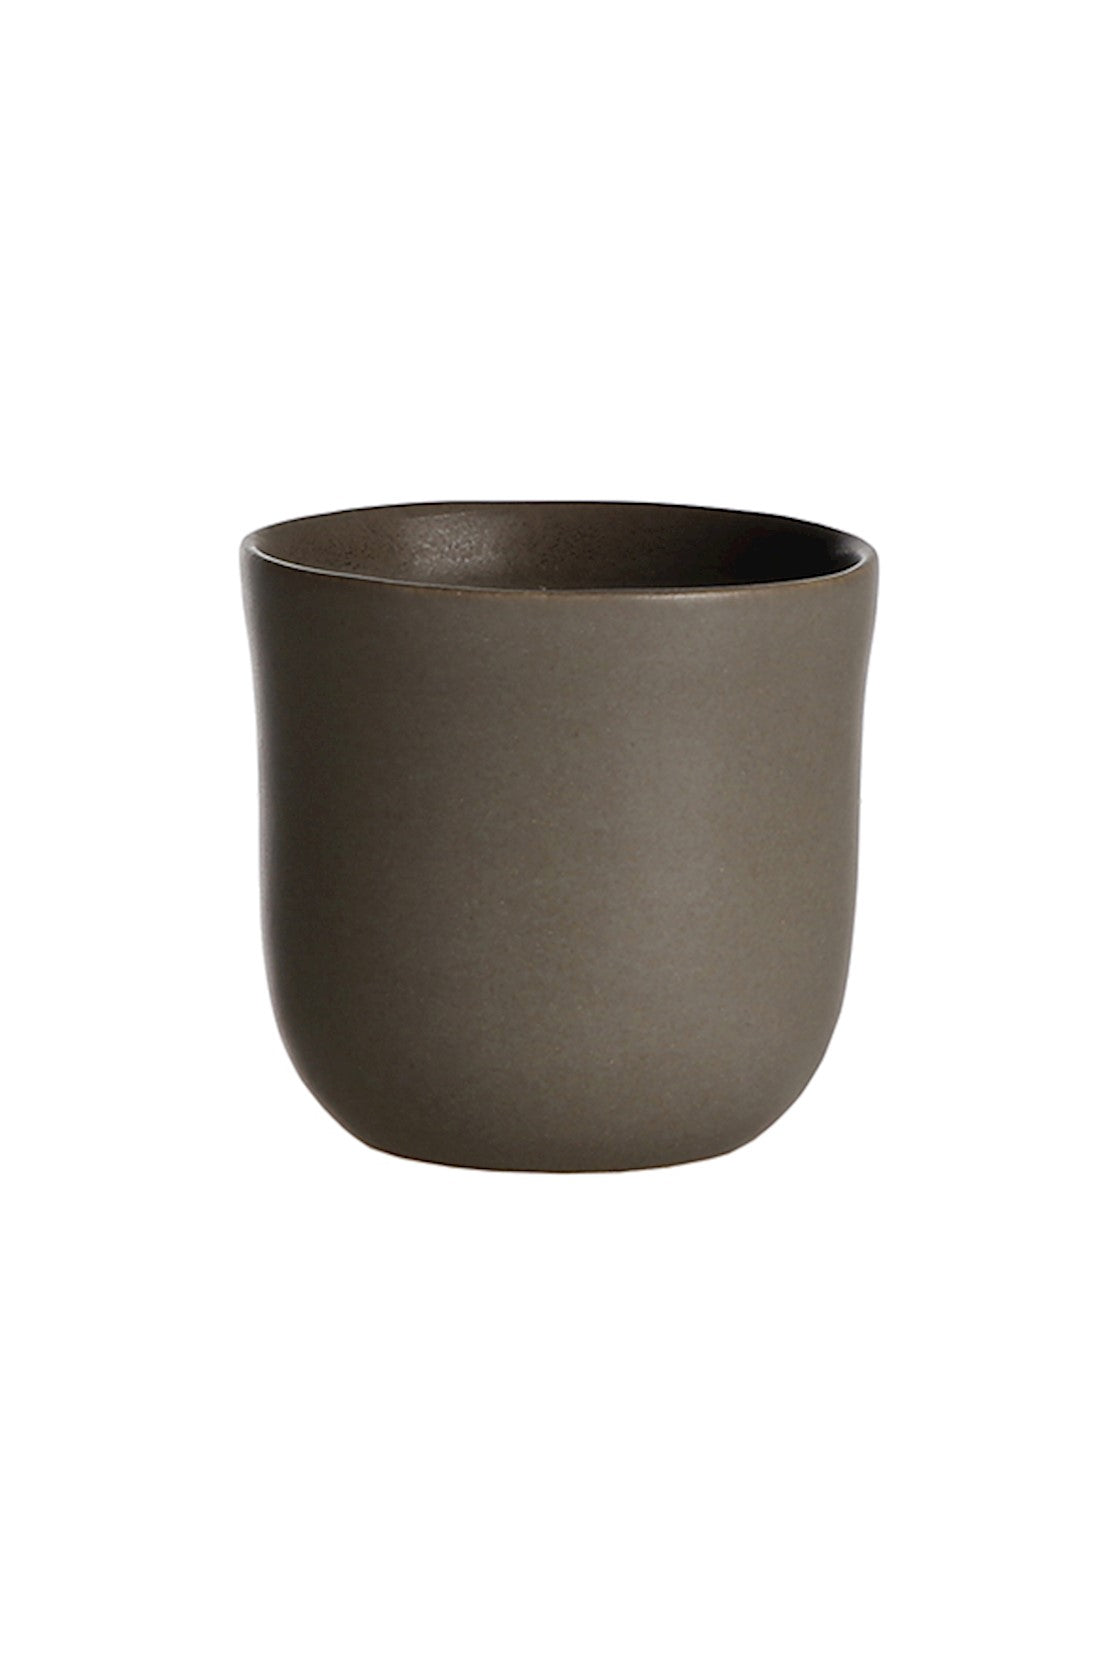 COFFEE CUPS 'PENEDA' ( 4 x ) - SCAPA HOME OFFICIAL